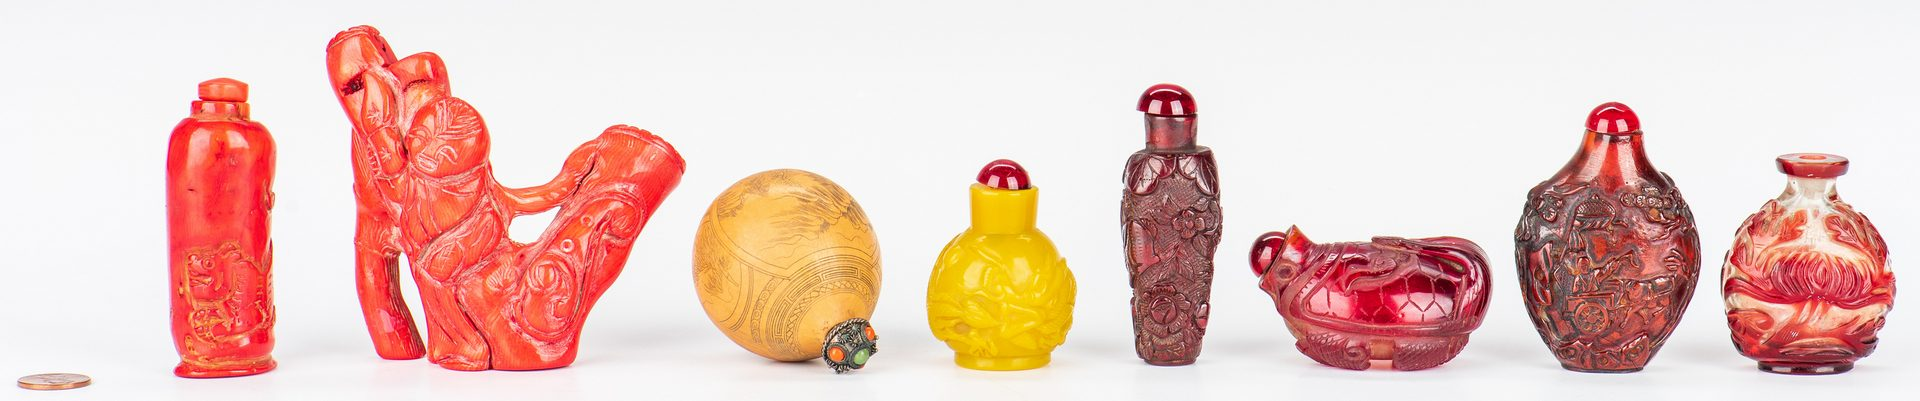 Lot 381: 7 Asian Snuff Bottles & 1 Carved Coral Figure, 8 pcs.